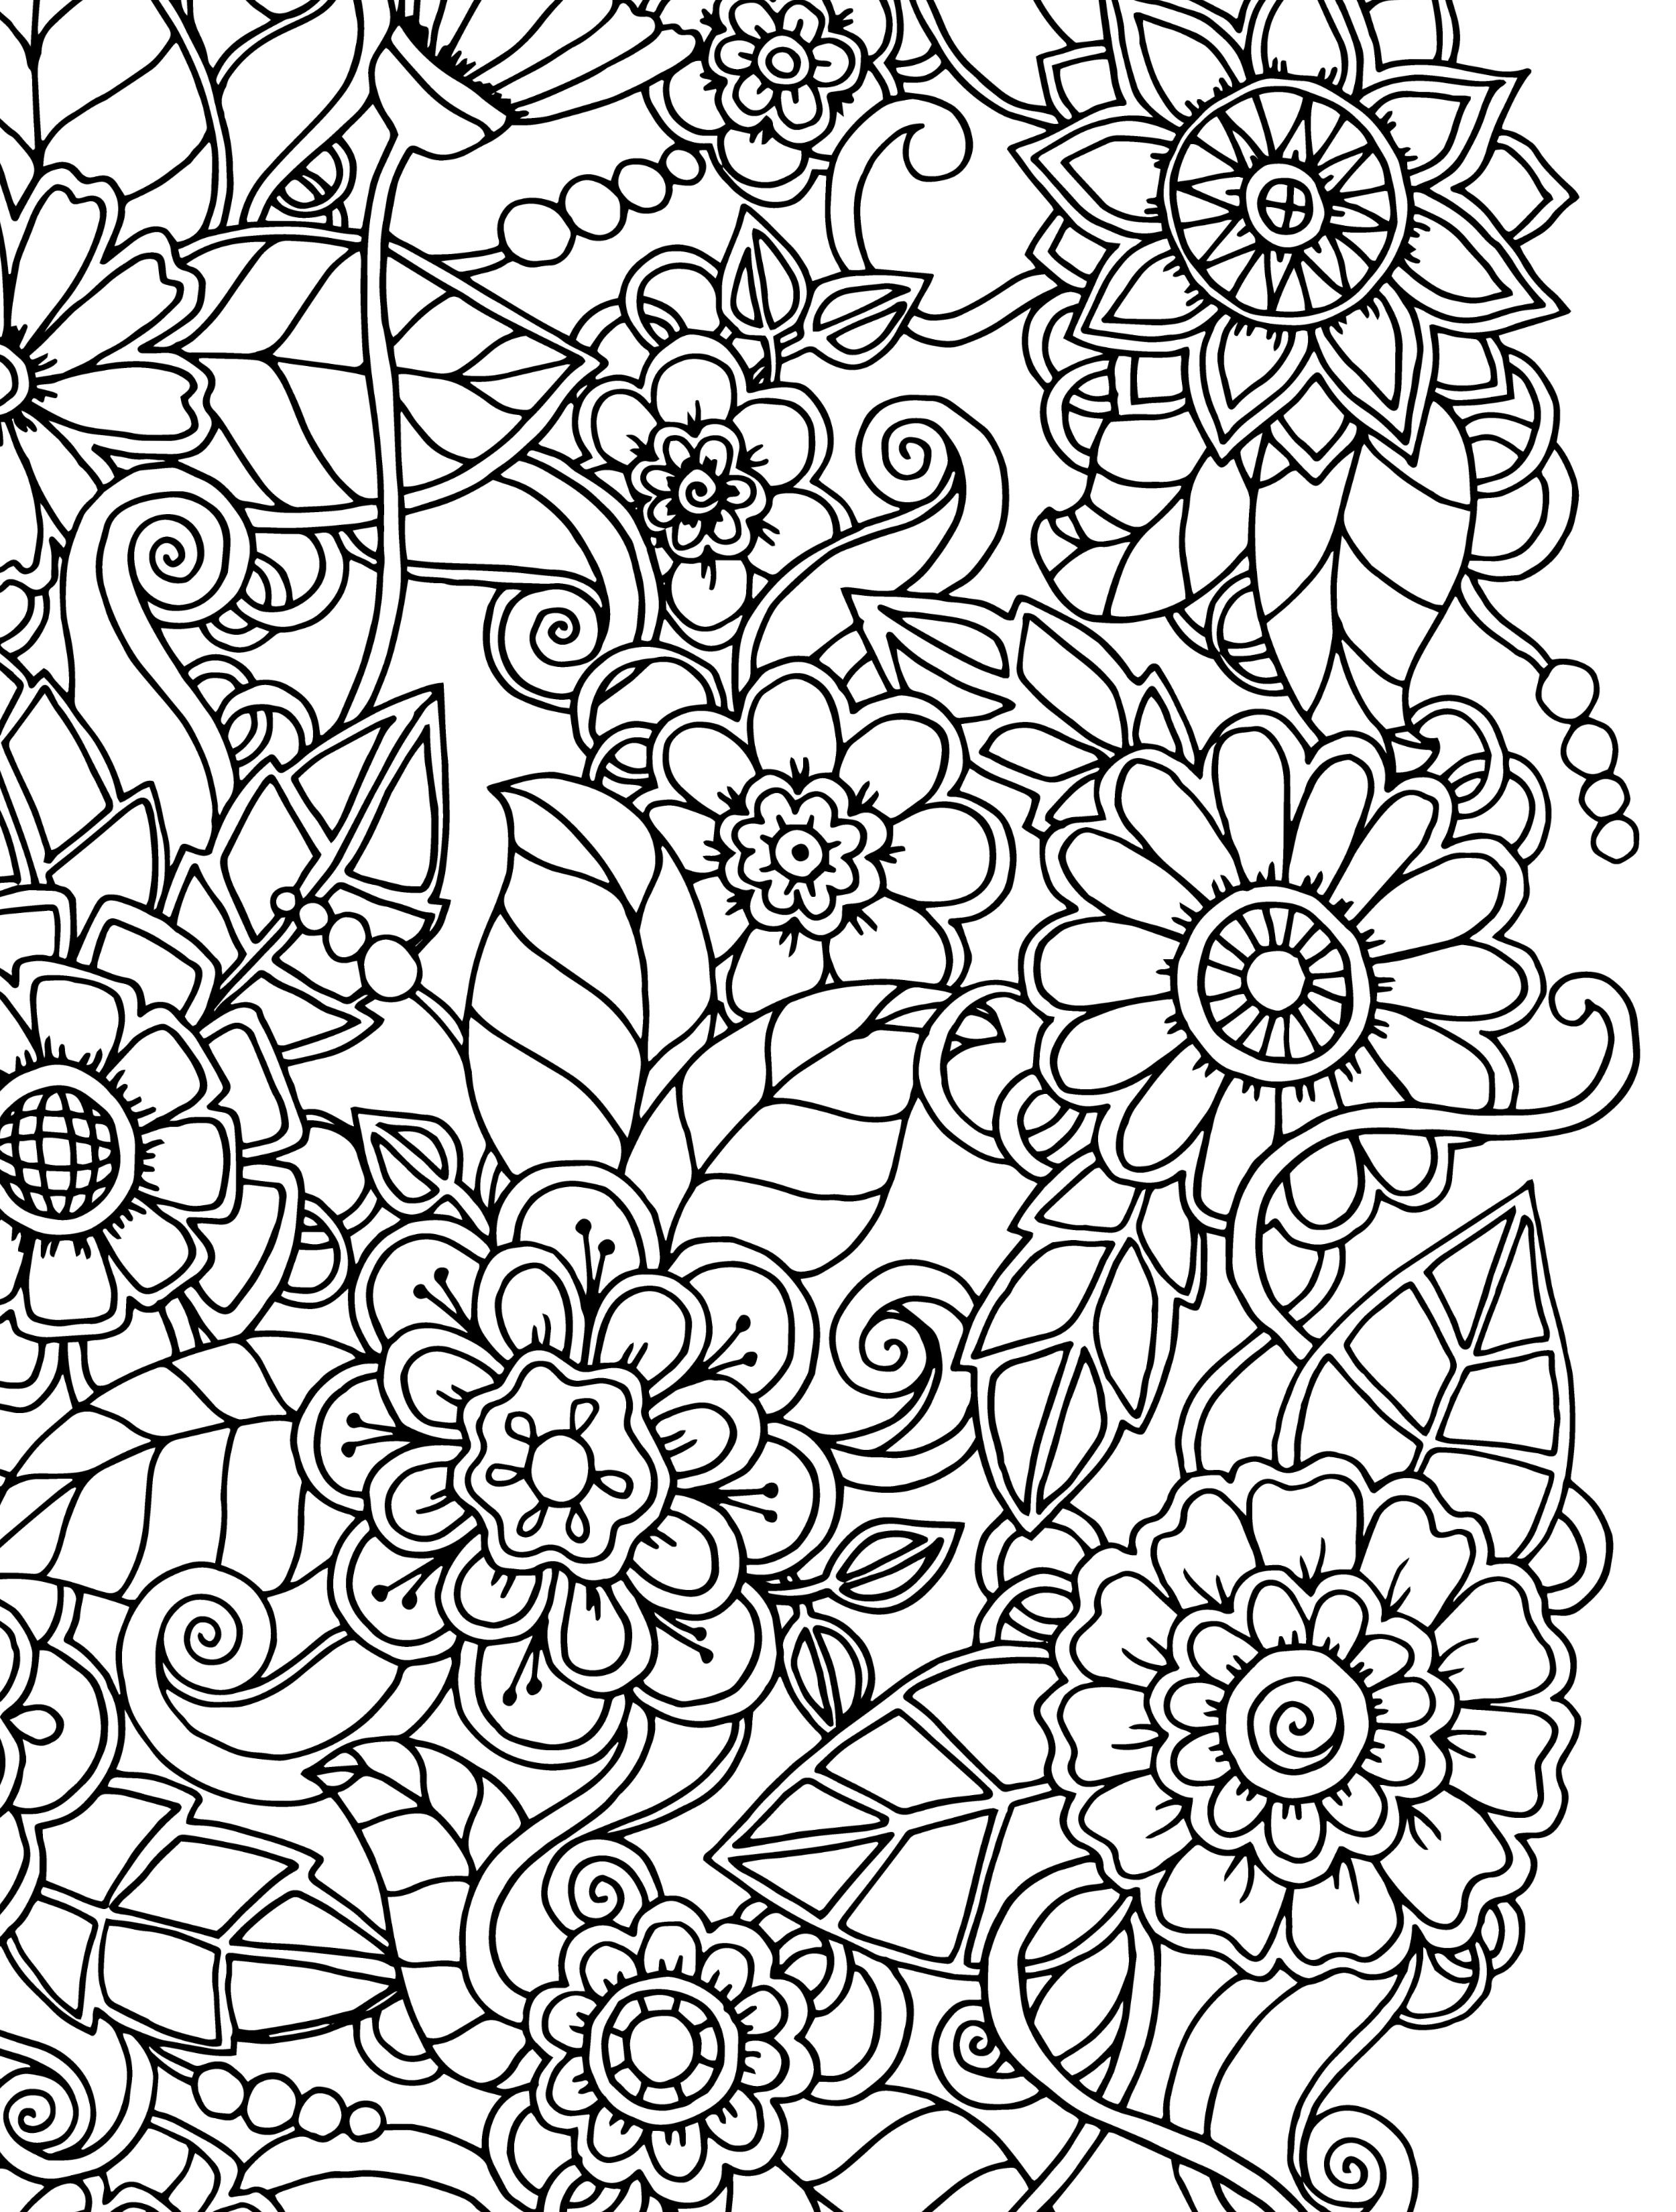 Flower Colouring In Pages For Adults